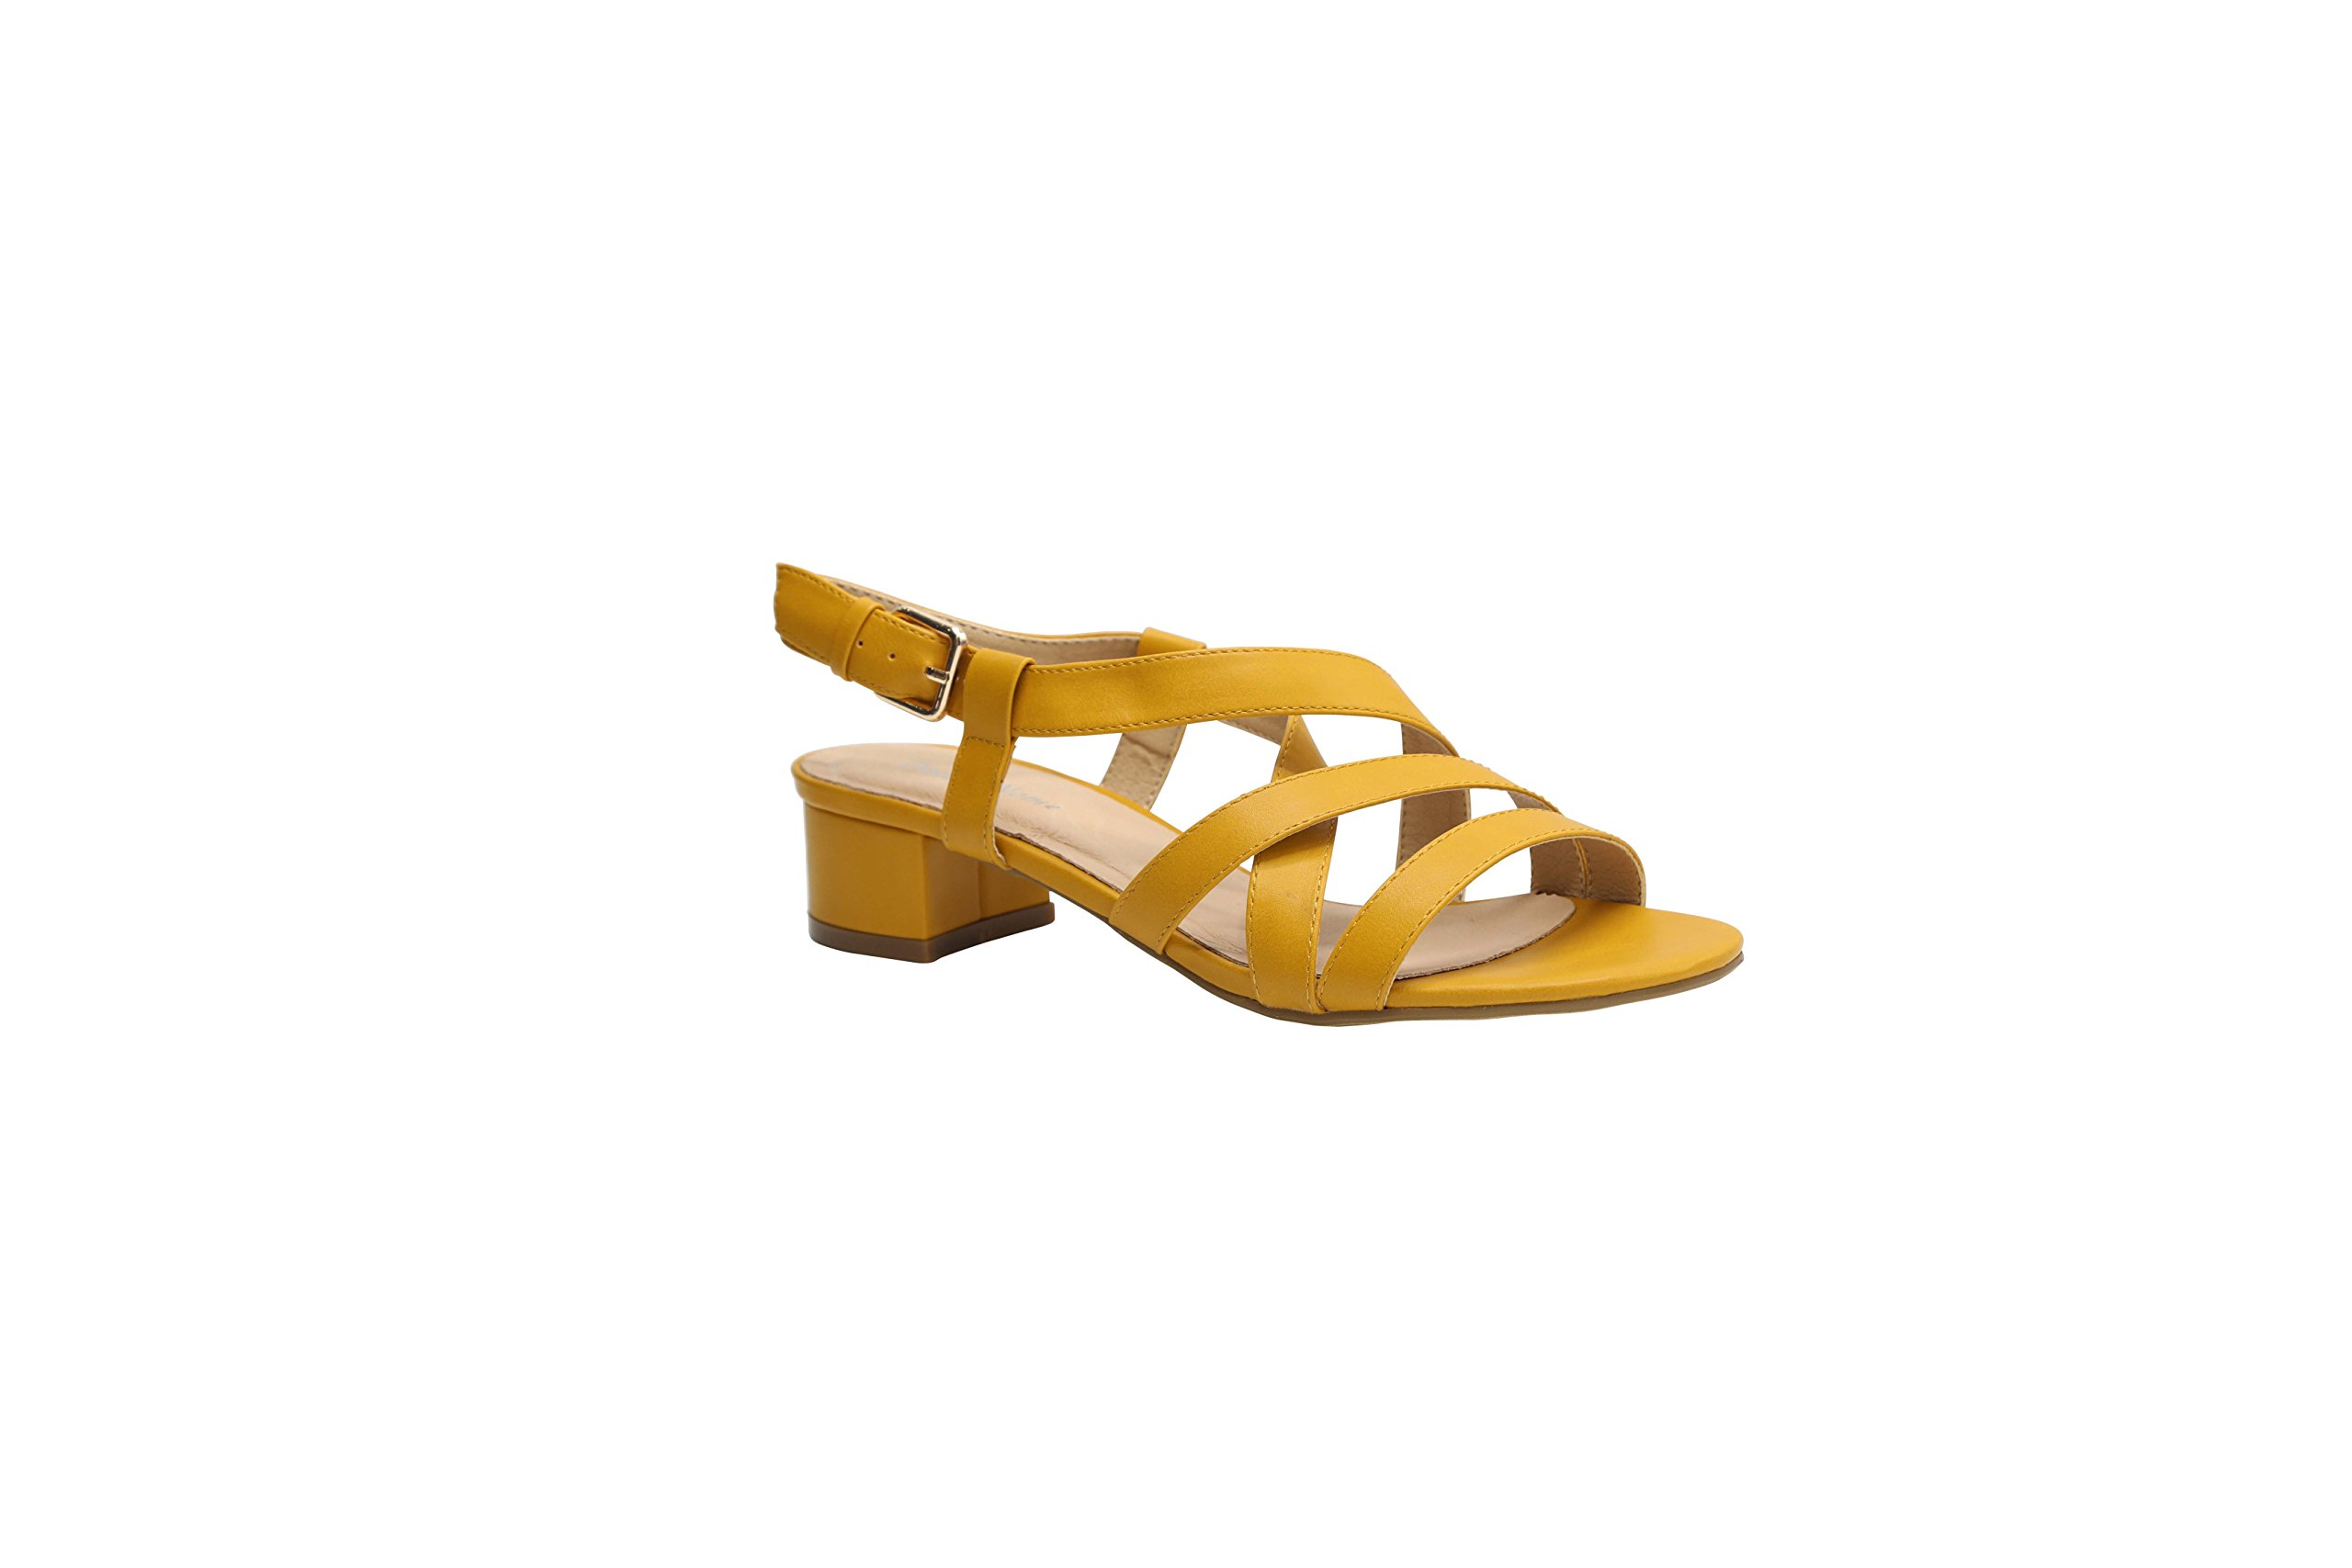 Dolce Nome Fashion Short Healed Open Toe Women's Designer Sandals Italian Style Well Constructed Ladies Fancy Shoes (41, Mustard)